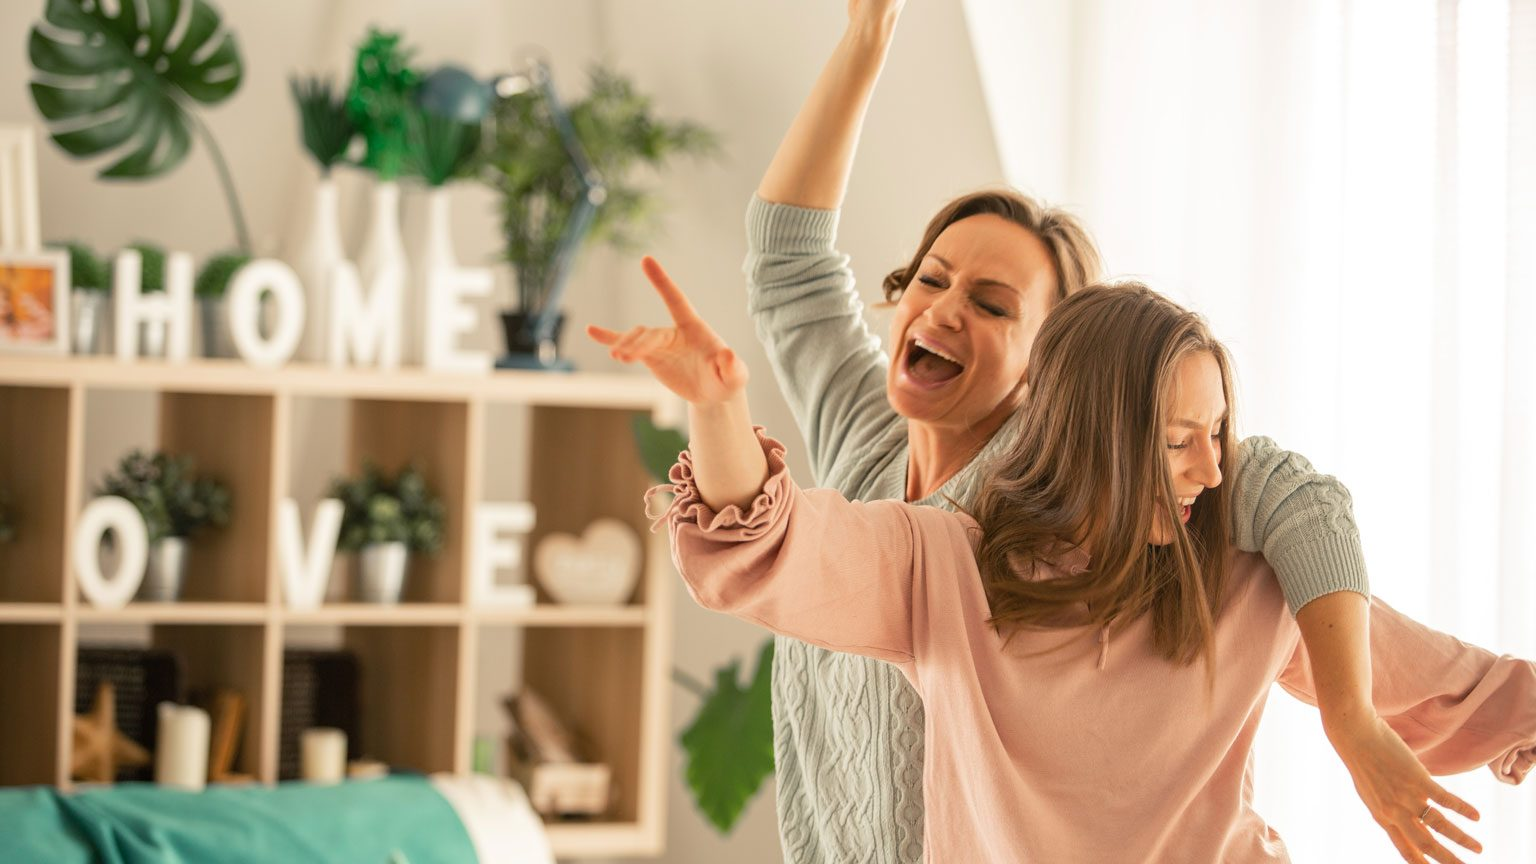 Mother and her daughter captured in the moment of pure joy and laughter while dancing and singing together in their living room.